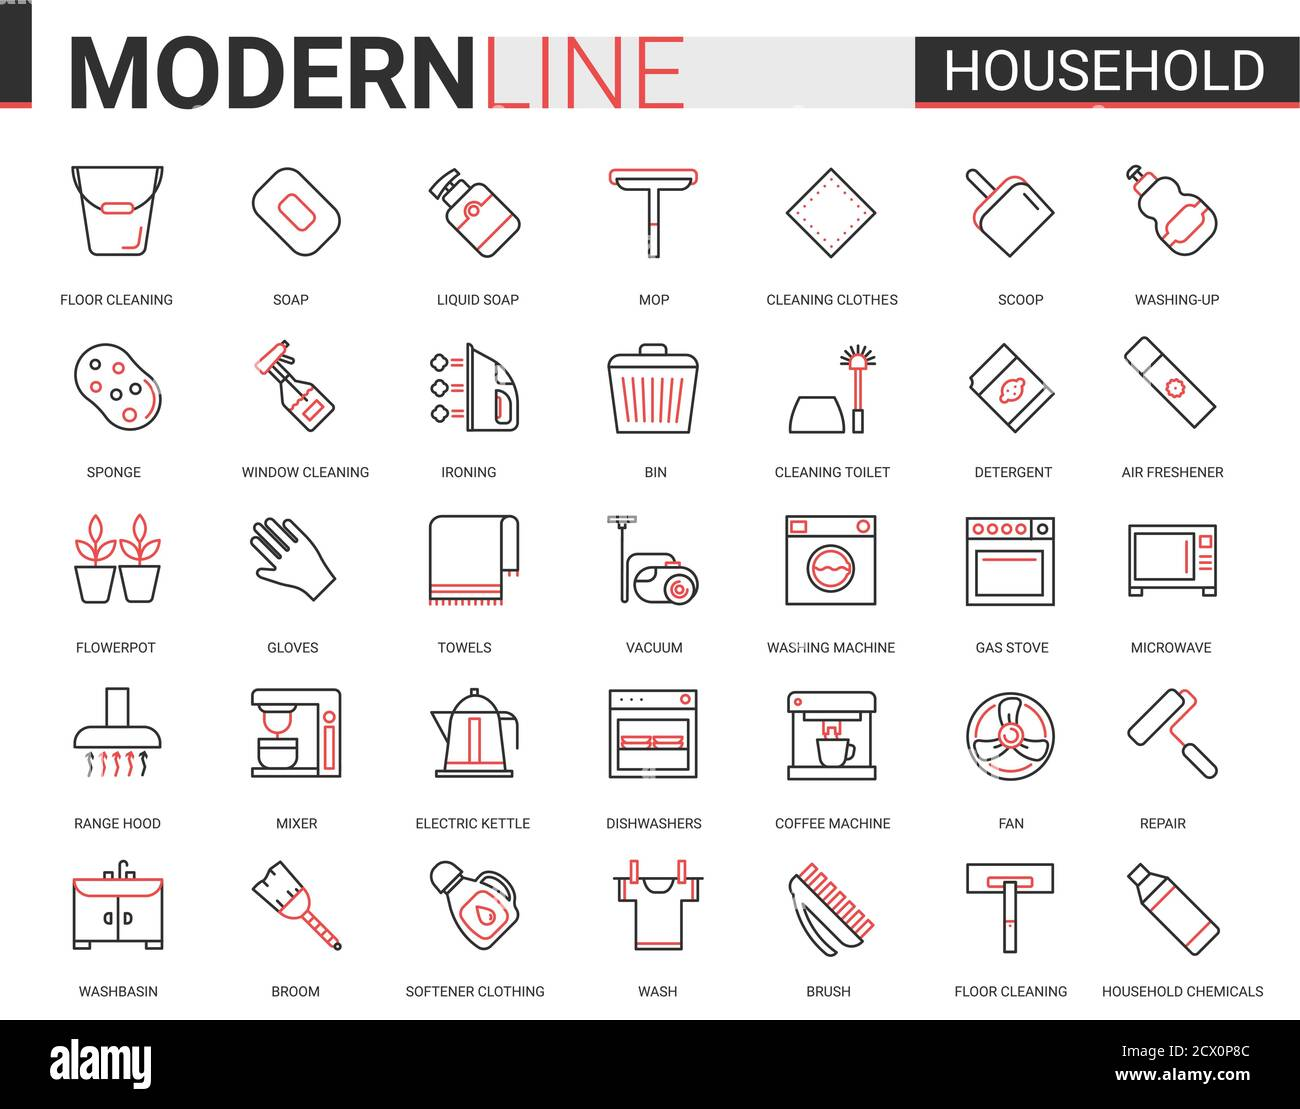 Household tools flat thin red black line icons vector illustration set, outline house cleaning, cooking or gardening linear symbols, housework collection of domestic cleaner equipment, home appliances Stock Vector